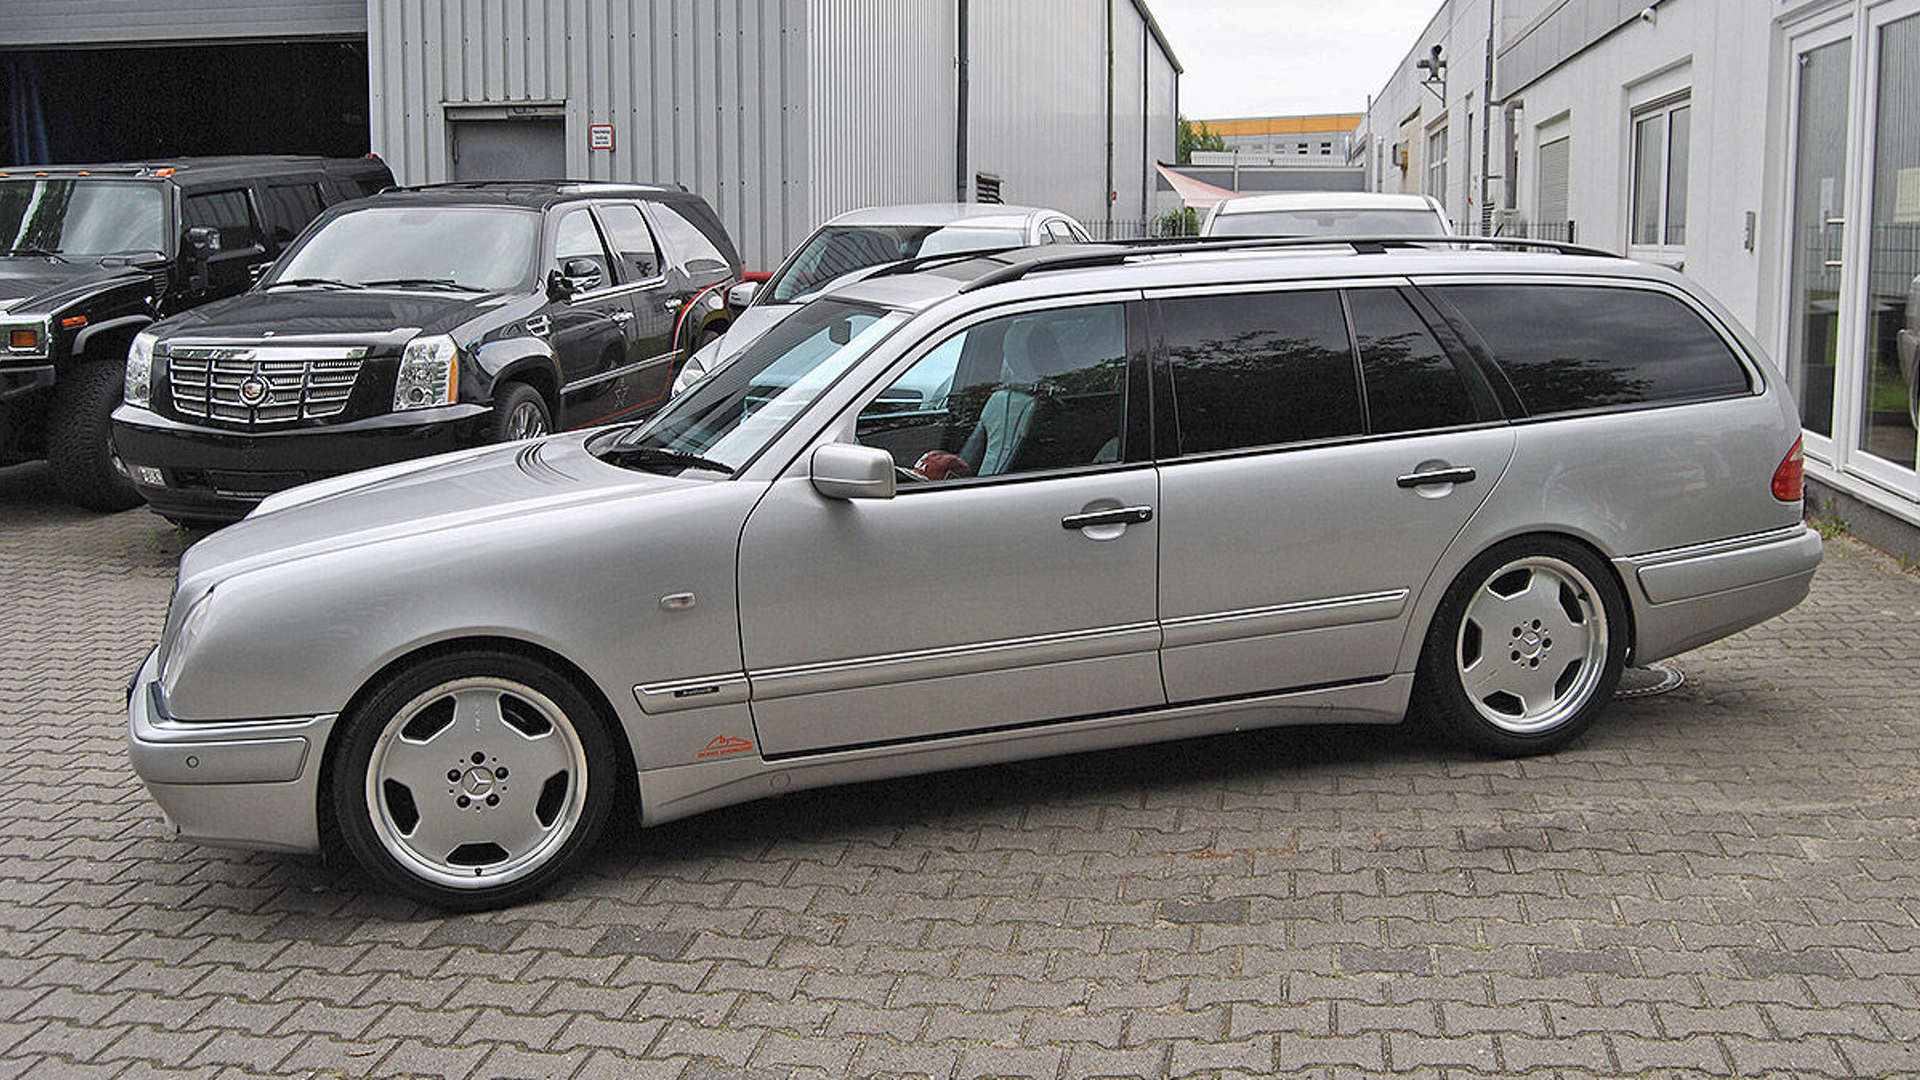 guide mercedes benz amg sale car news buying motoring autocar for